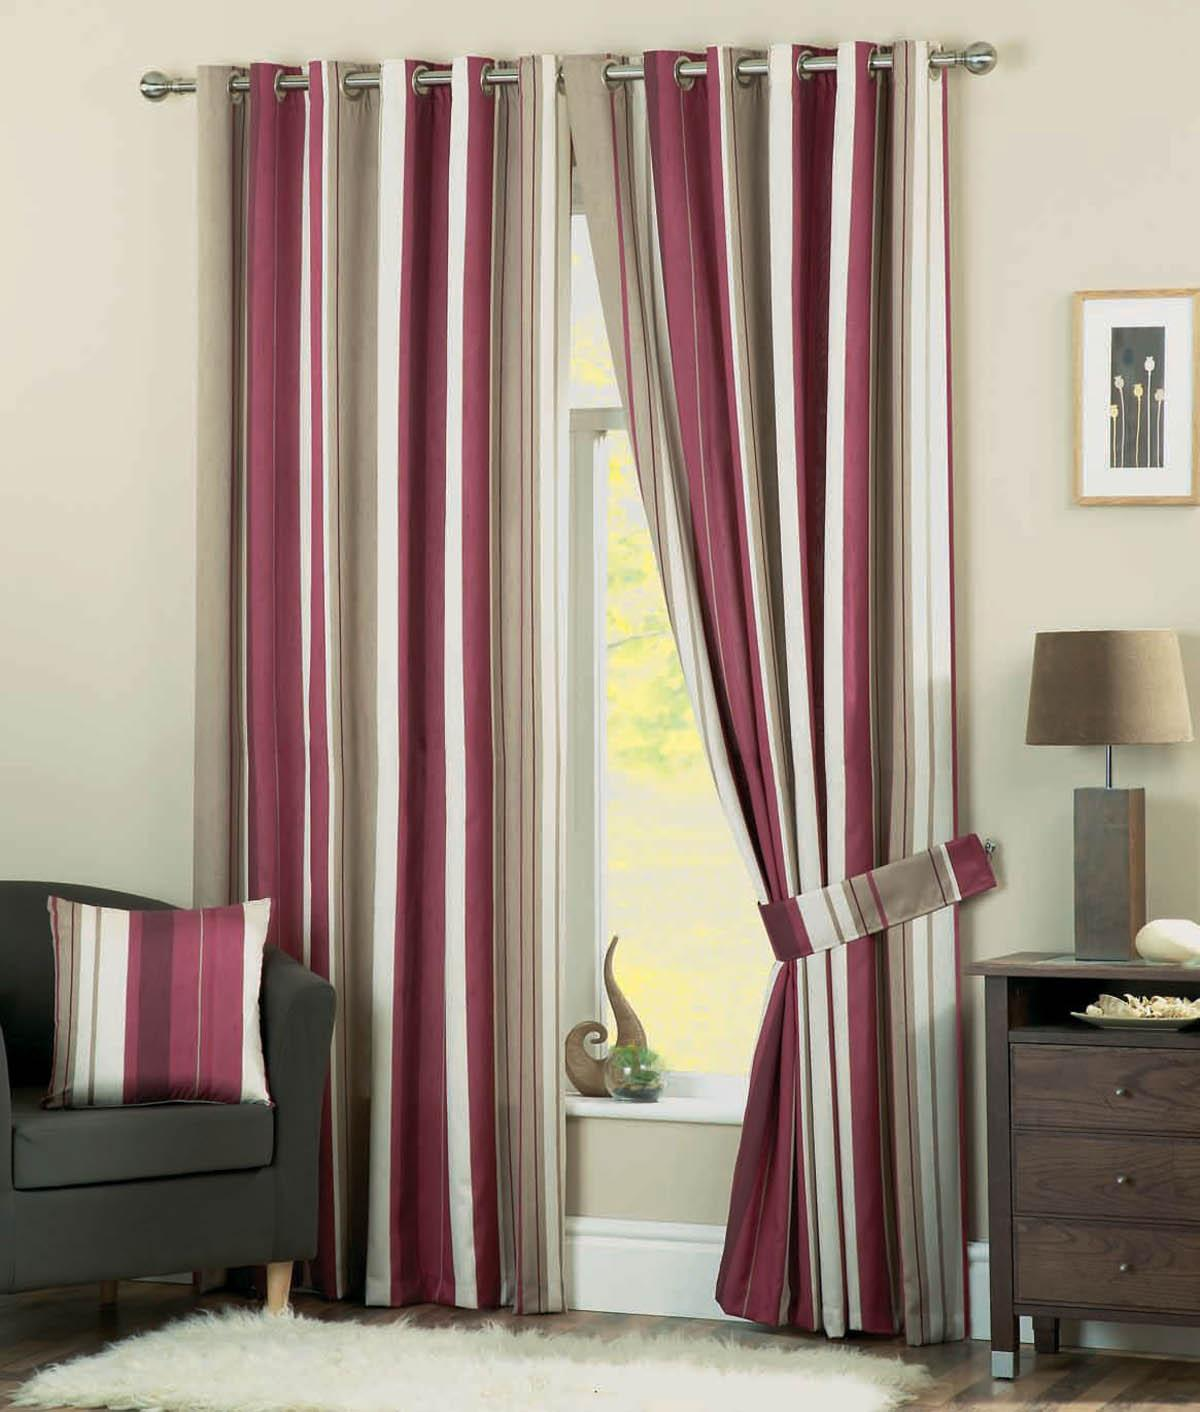 Curtains with hooks on the back 187 home design 2017 - Whitworth Ready Made Eyelet Curtains